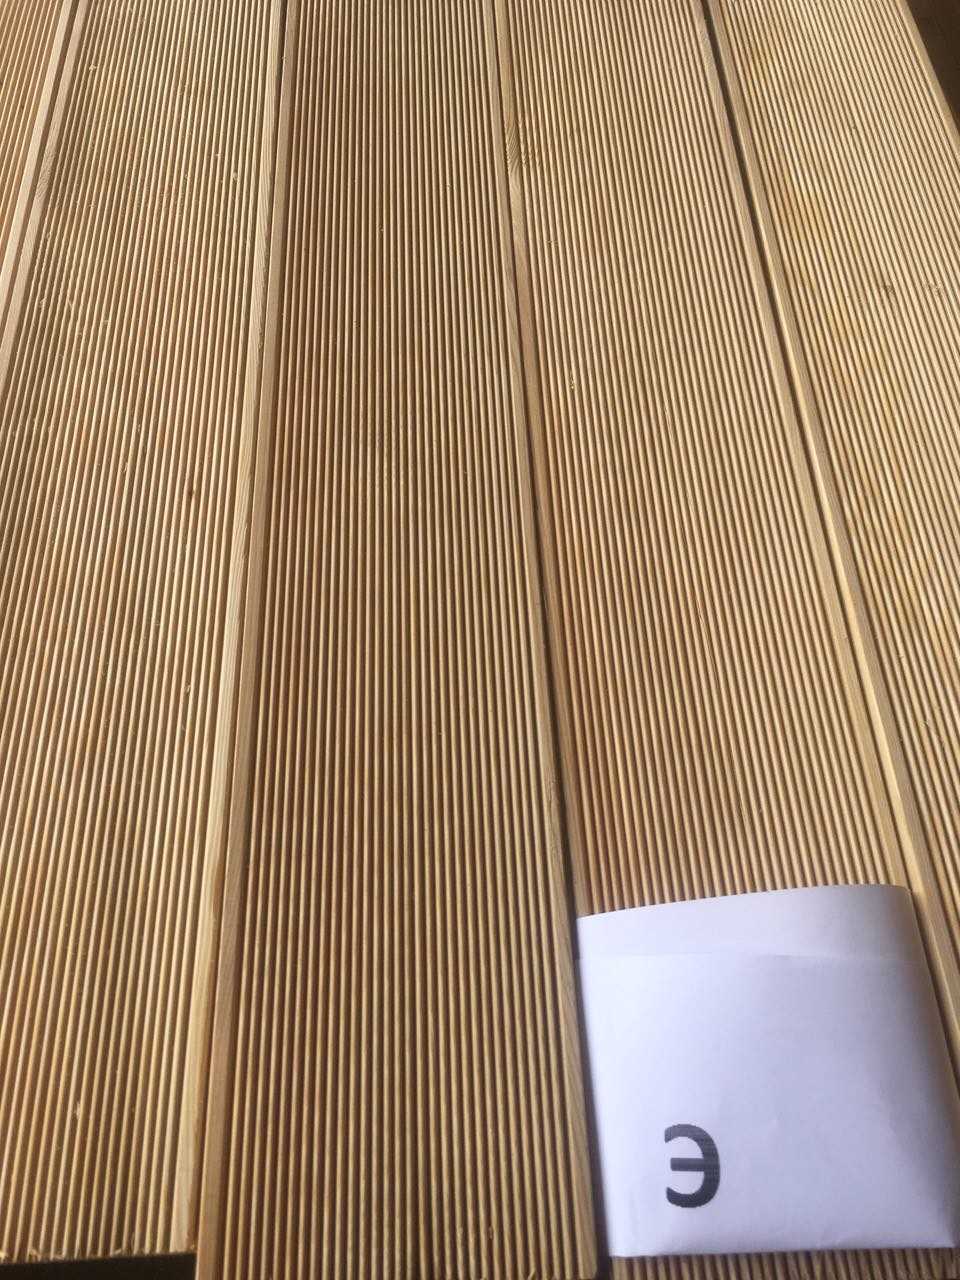 Llc bozhena production of siberian larch decking for Smooth hardwood decking boards